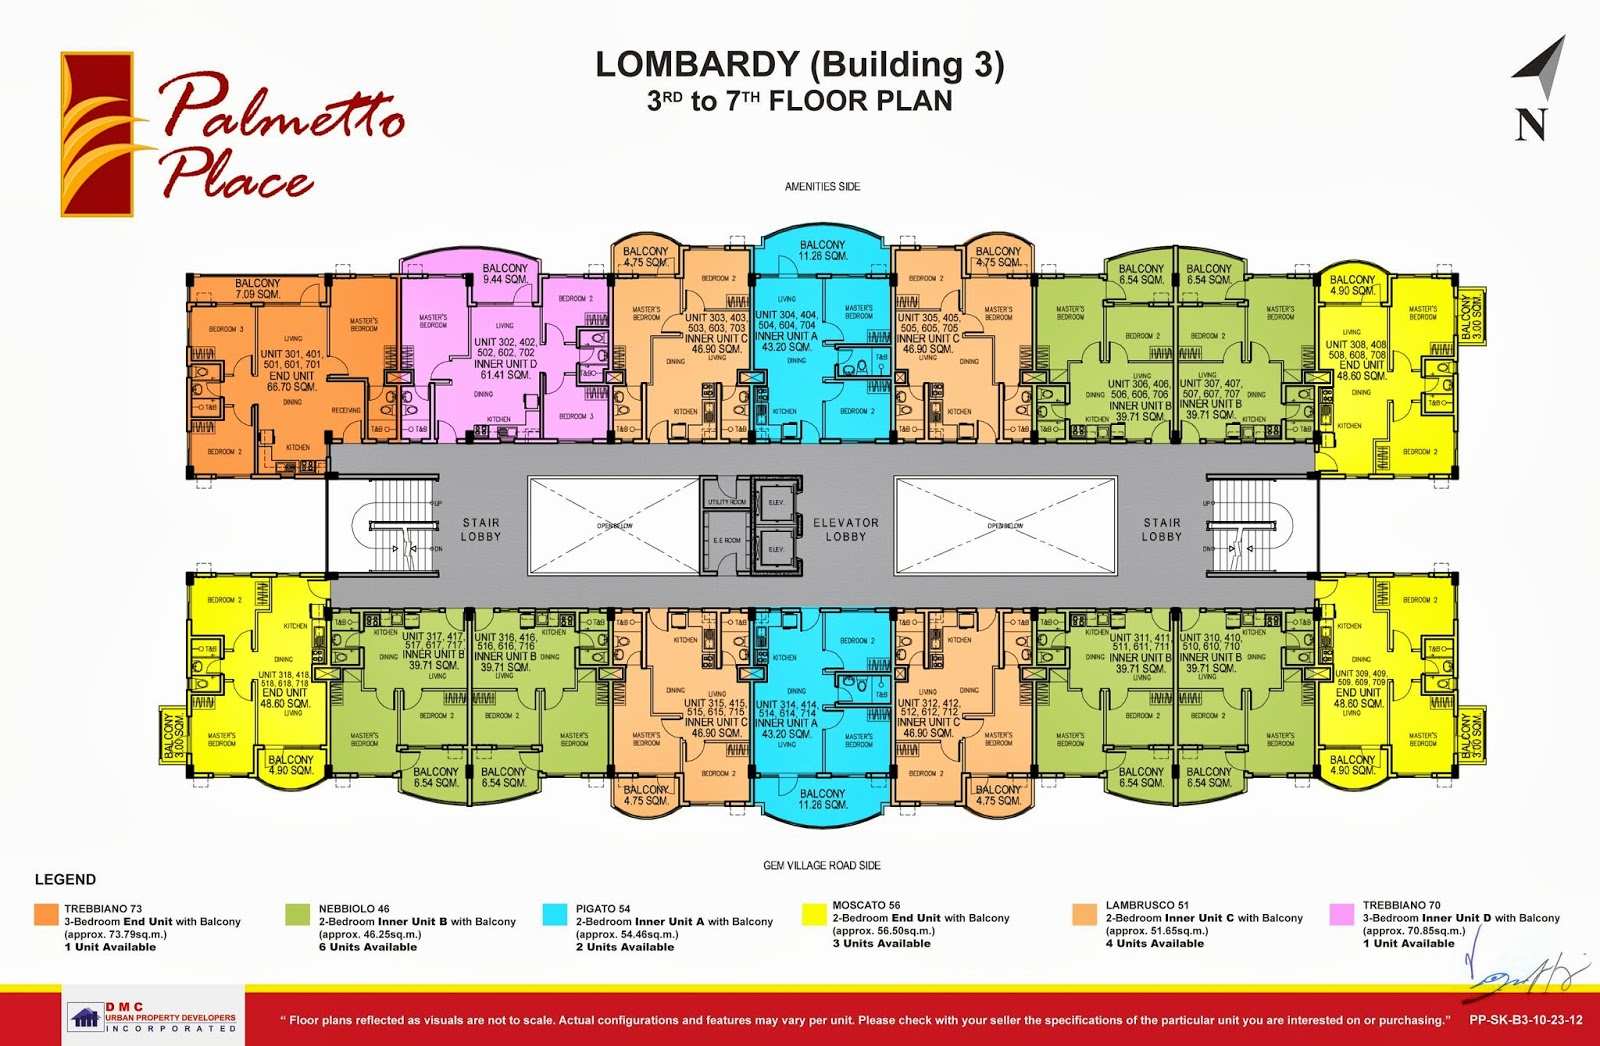 Palmetto Place Condominium, Ma-a, Davao City 3rd-7th Floor Plan